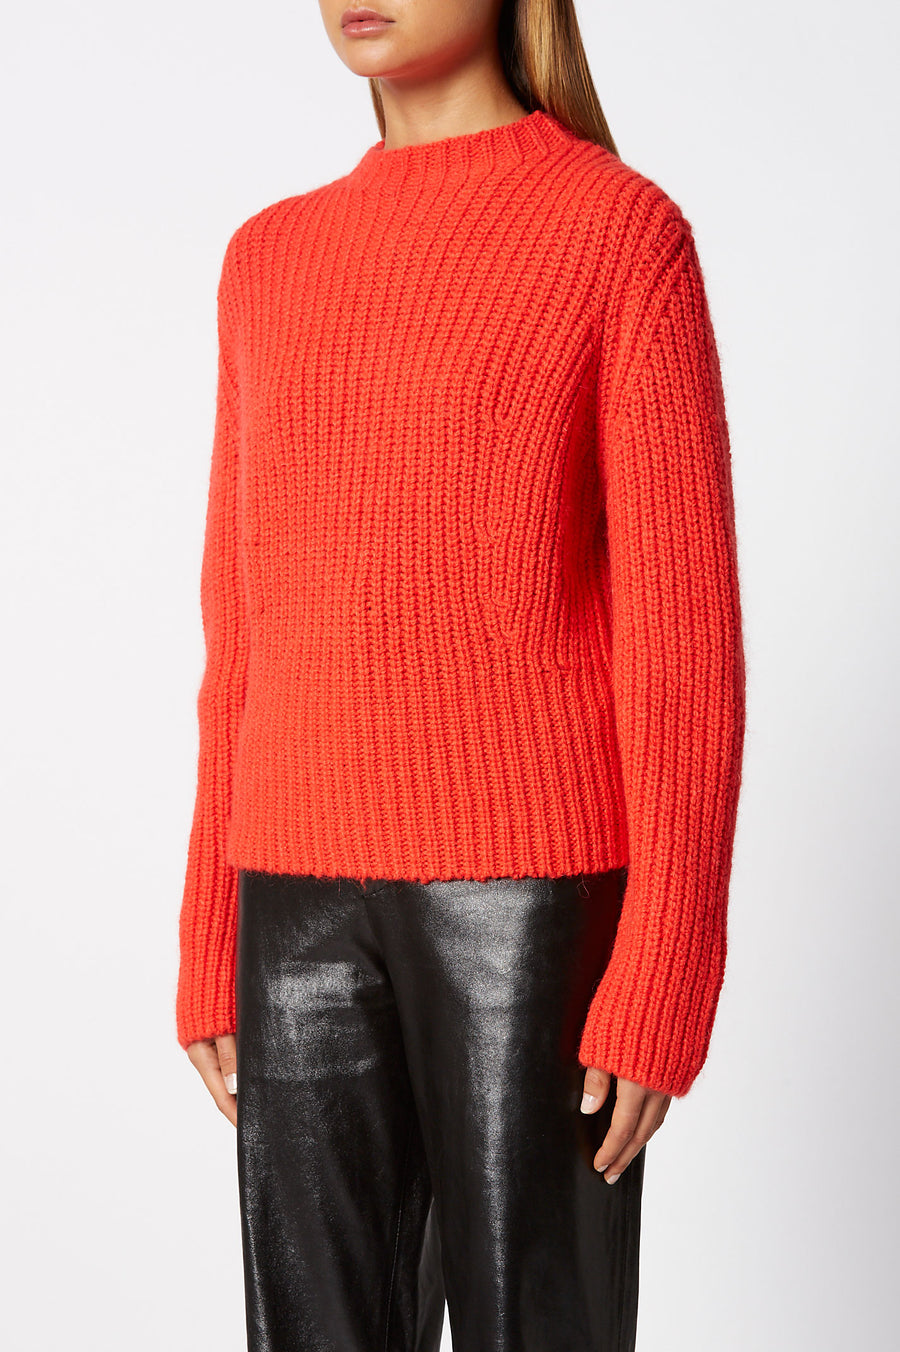 Cropped Rib Sweater, rib-knitted, slim fit, turtleneck silhouette, Color Tangerine